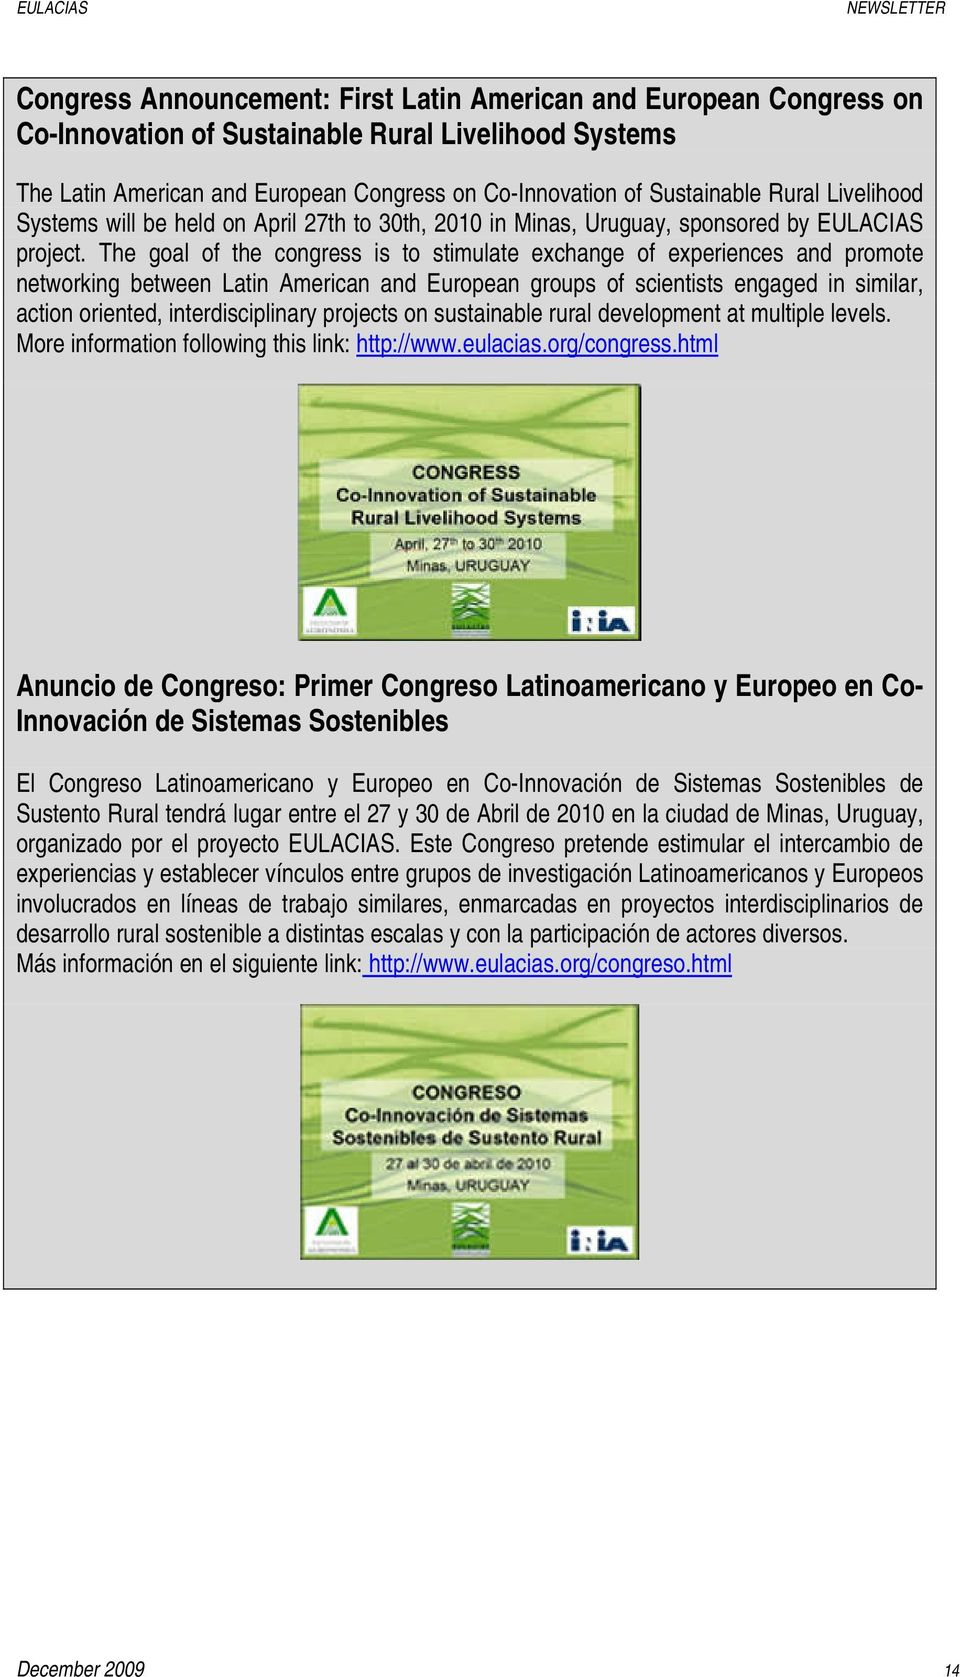 The goal of the congress is to stimulate exchange of experiences and promote networking between Latin American and European groups of scientists engaged in similar, action oriented, interdisciplinary